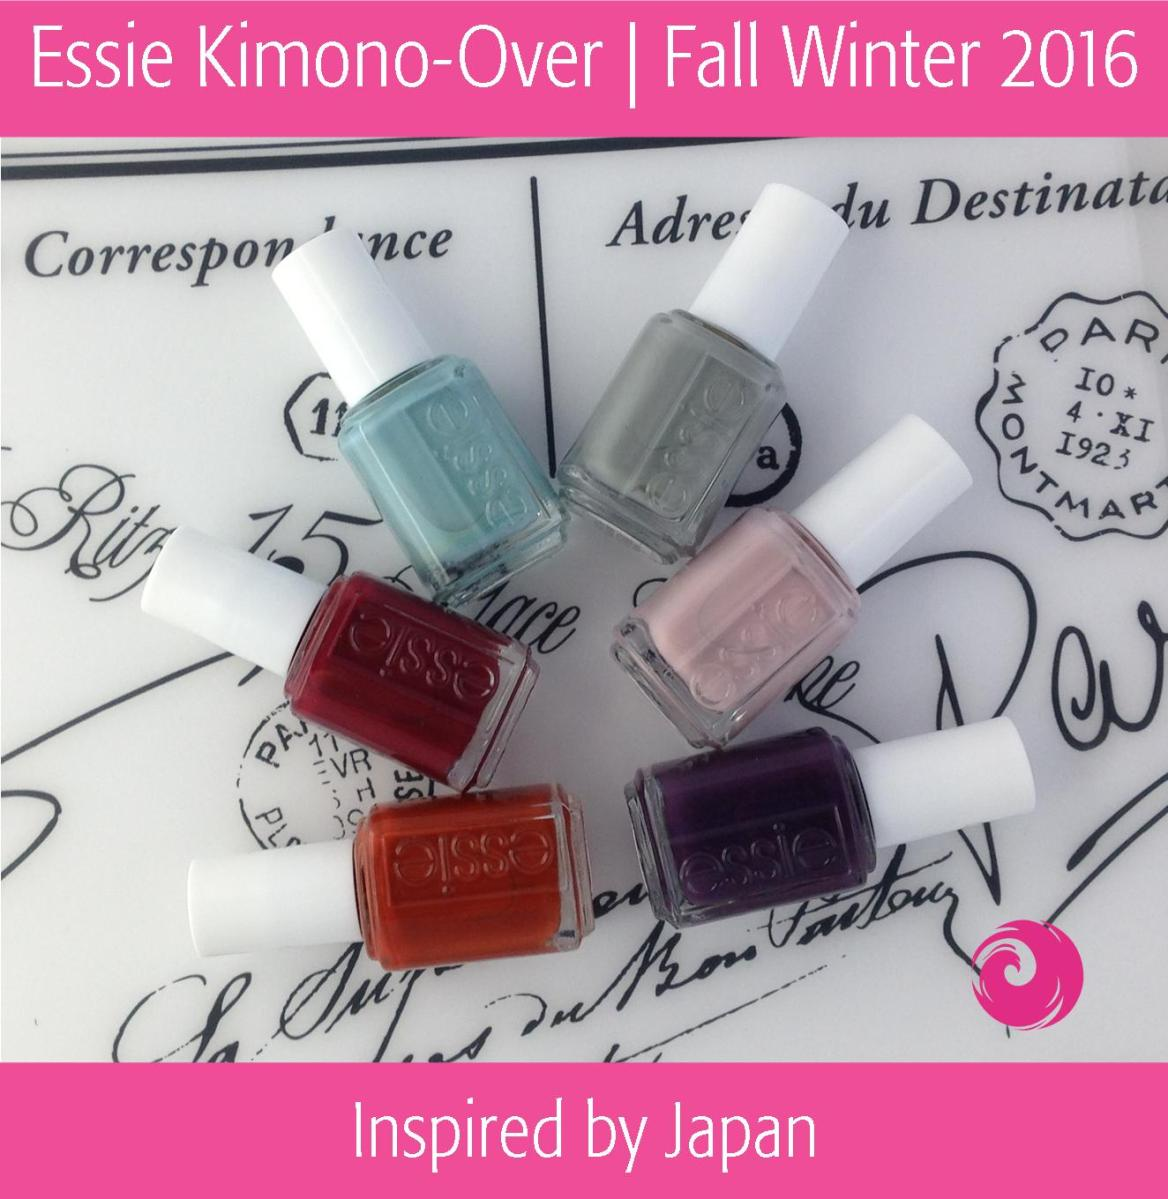 Essie Kimono-over Fall 2016 Collection